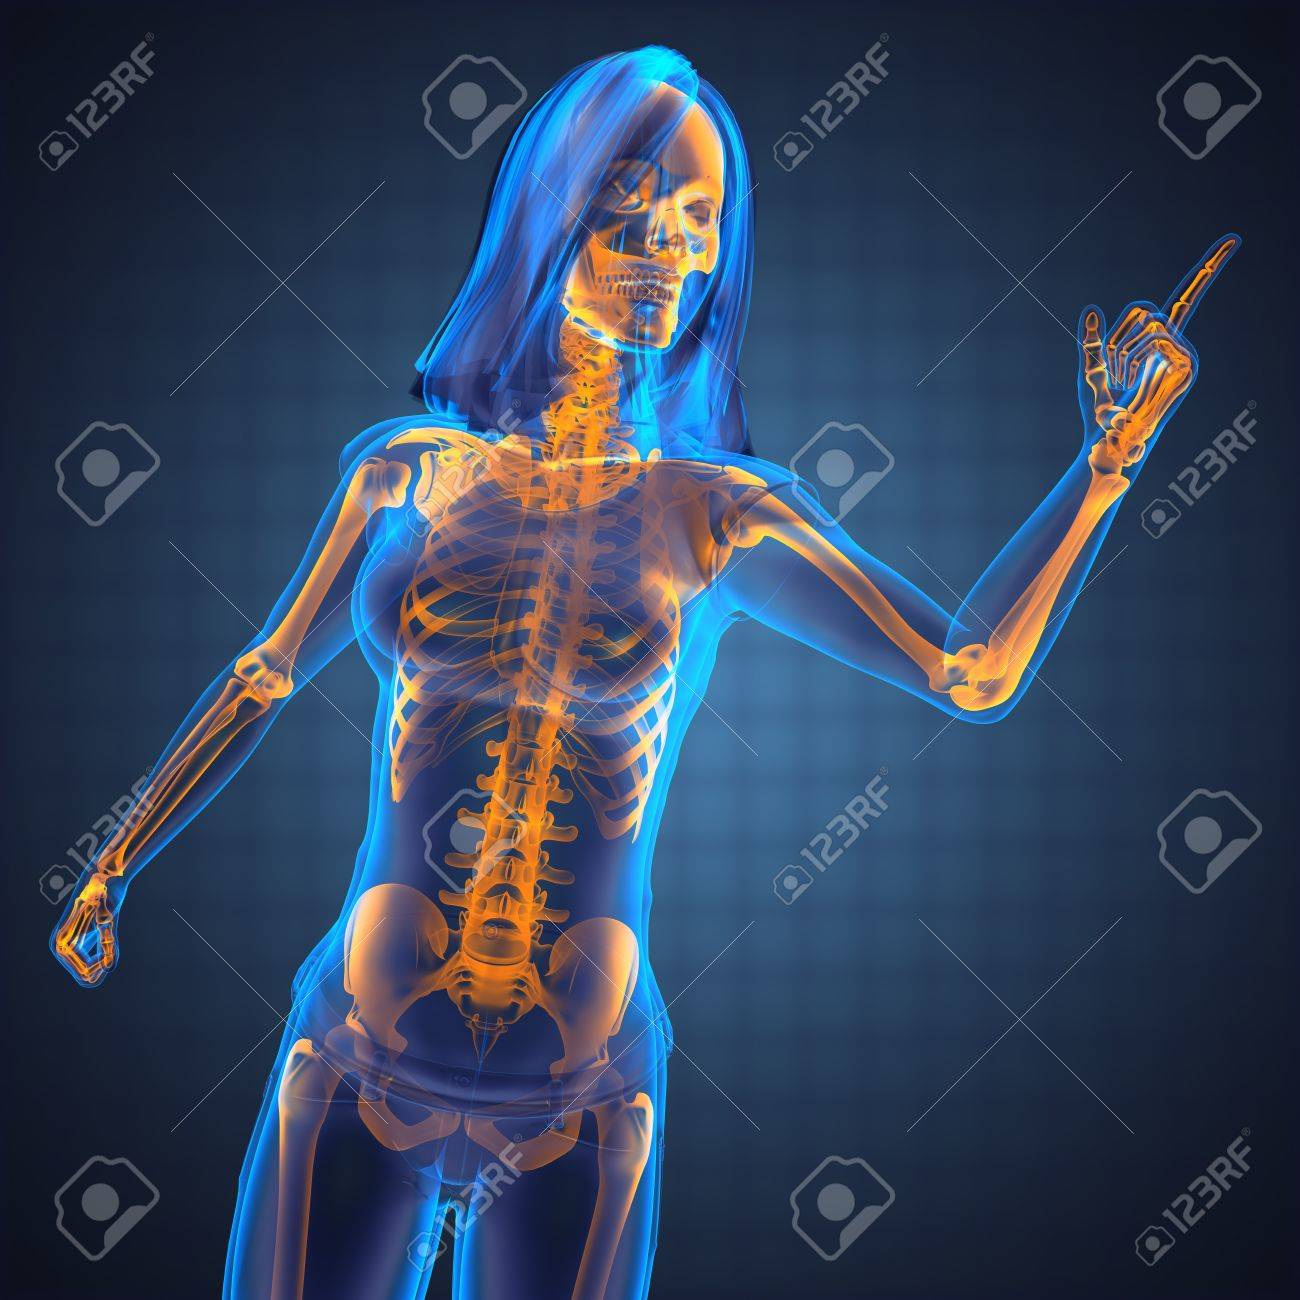 cute woman radiography made in 3D graphics Stock Photo - 12602170